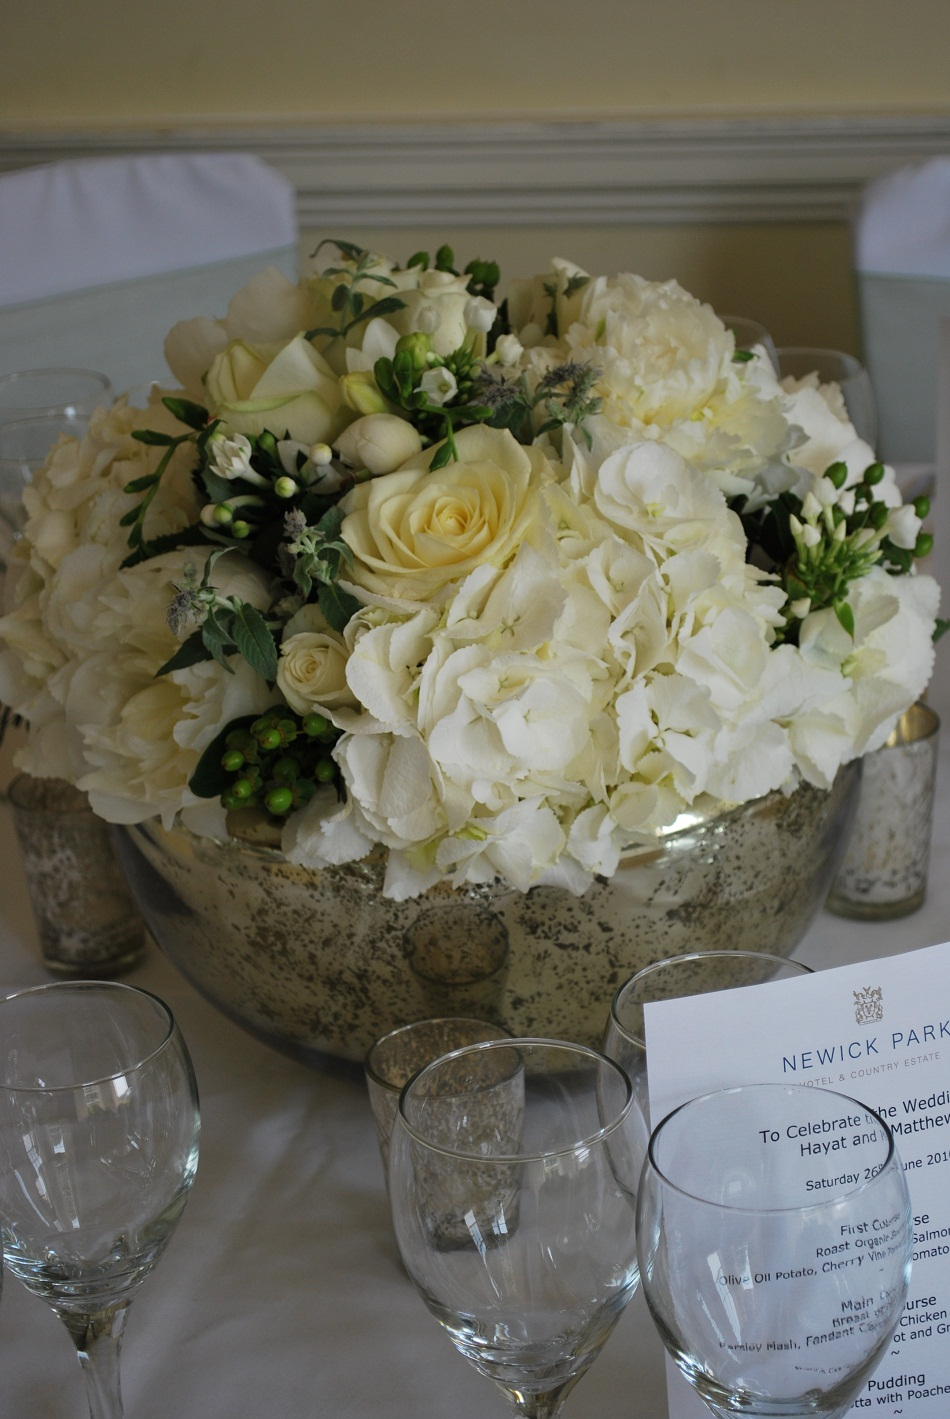 Wedding Flowers Newick park.jpg